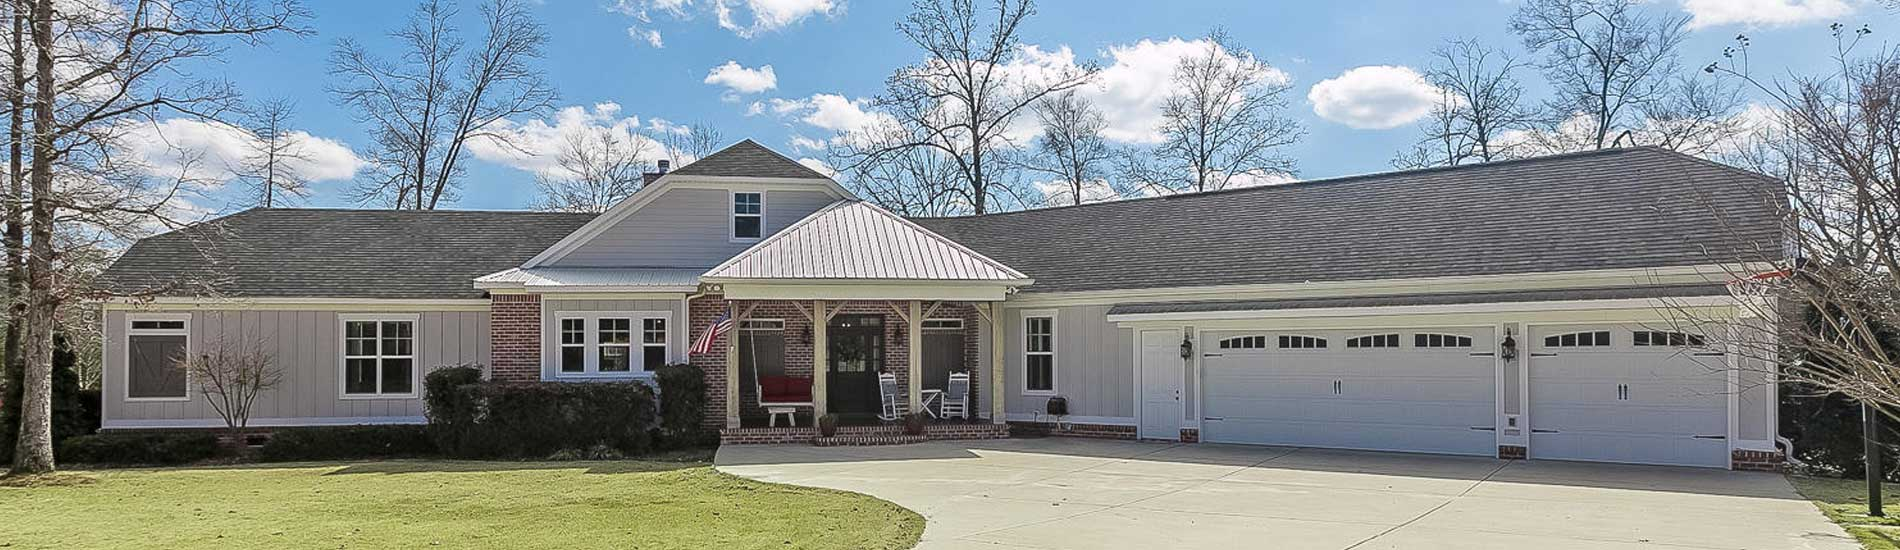 House | Greg Oldham Realtor Home Buying Selling Columbia County GA